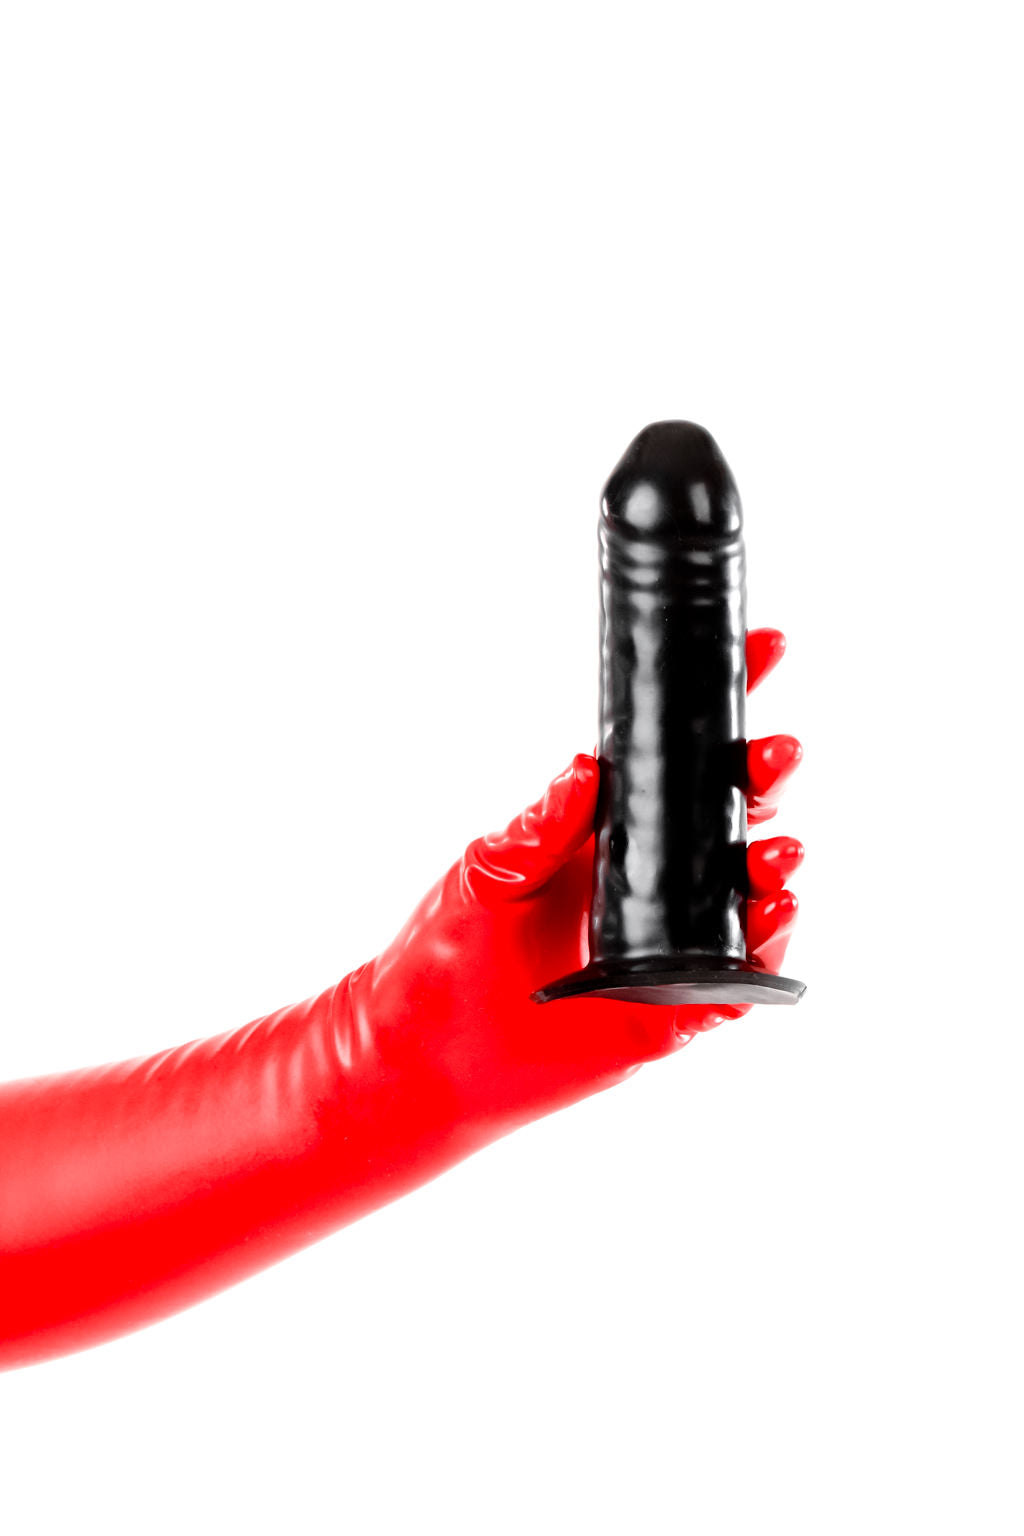 Red latex gloves holding a large solid penis dildo.